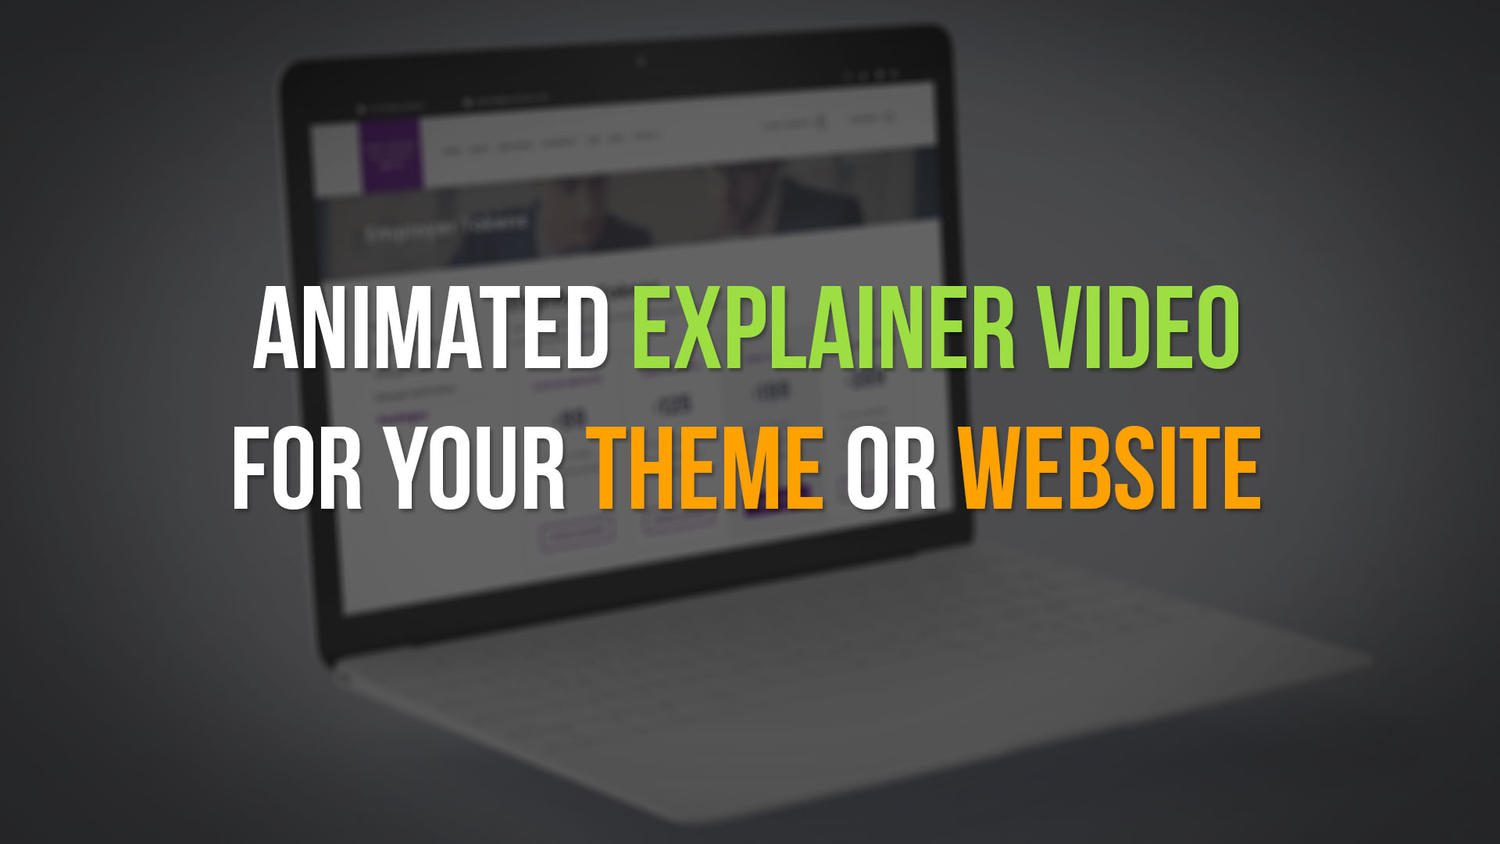 Themeforest Theme - Explainer Video (30 seconds) + Voice Over by kiwiplay - 110412